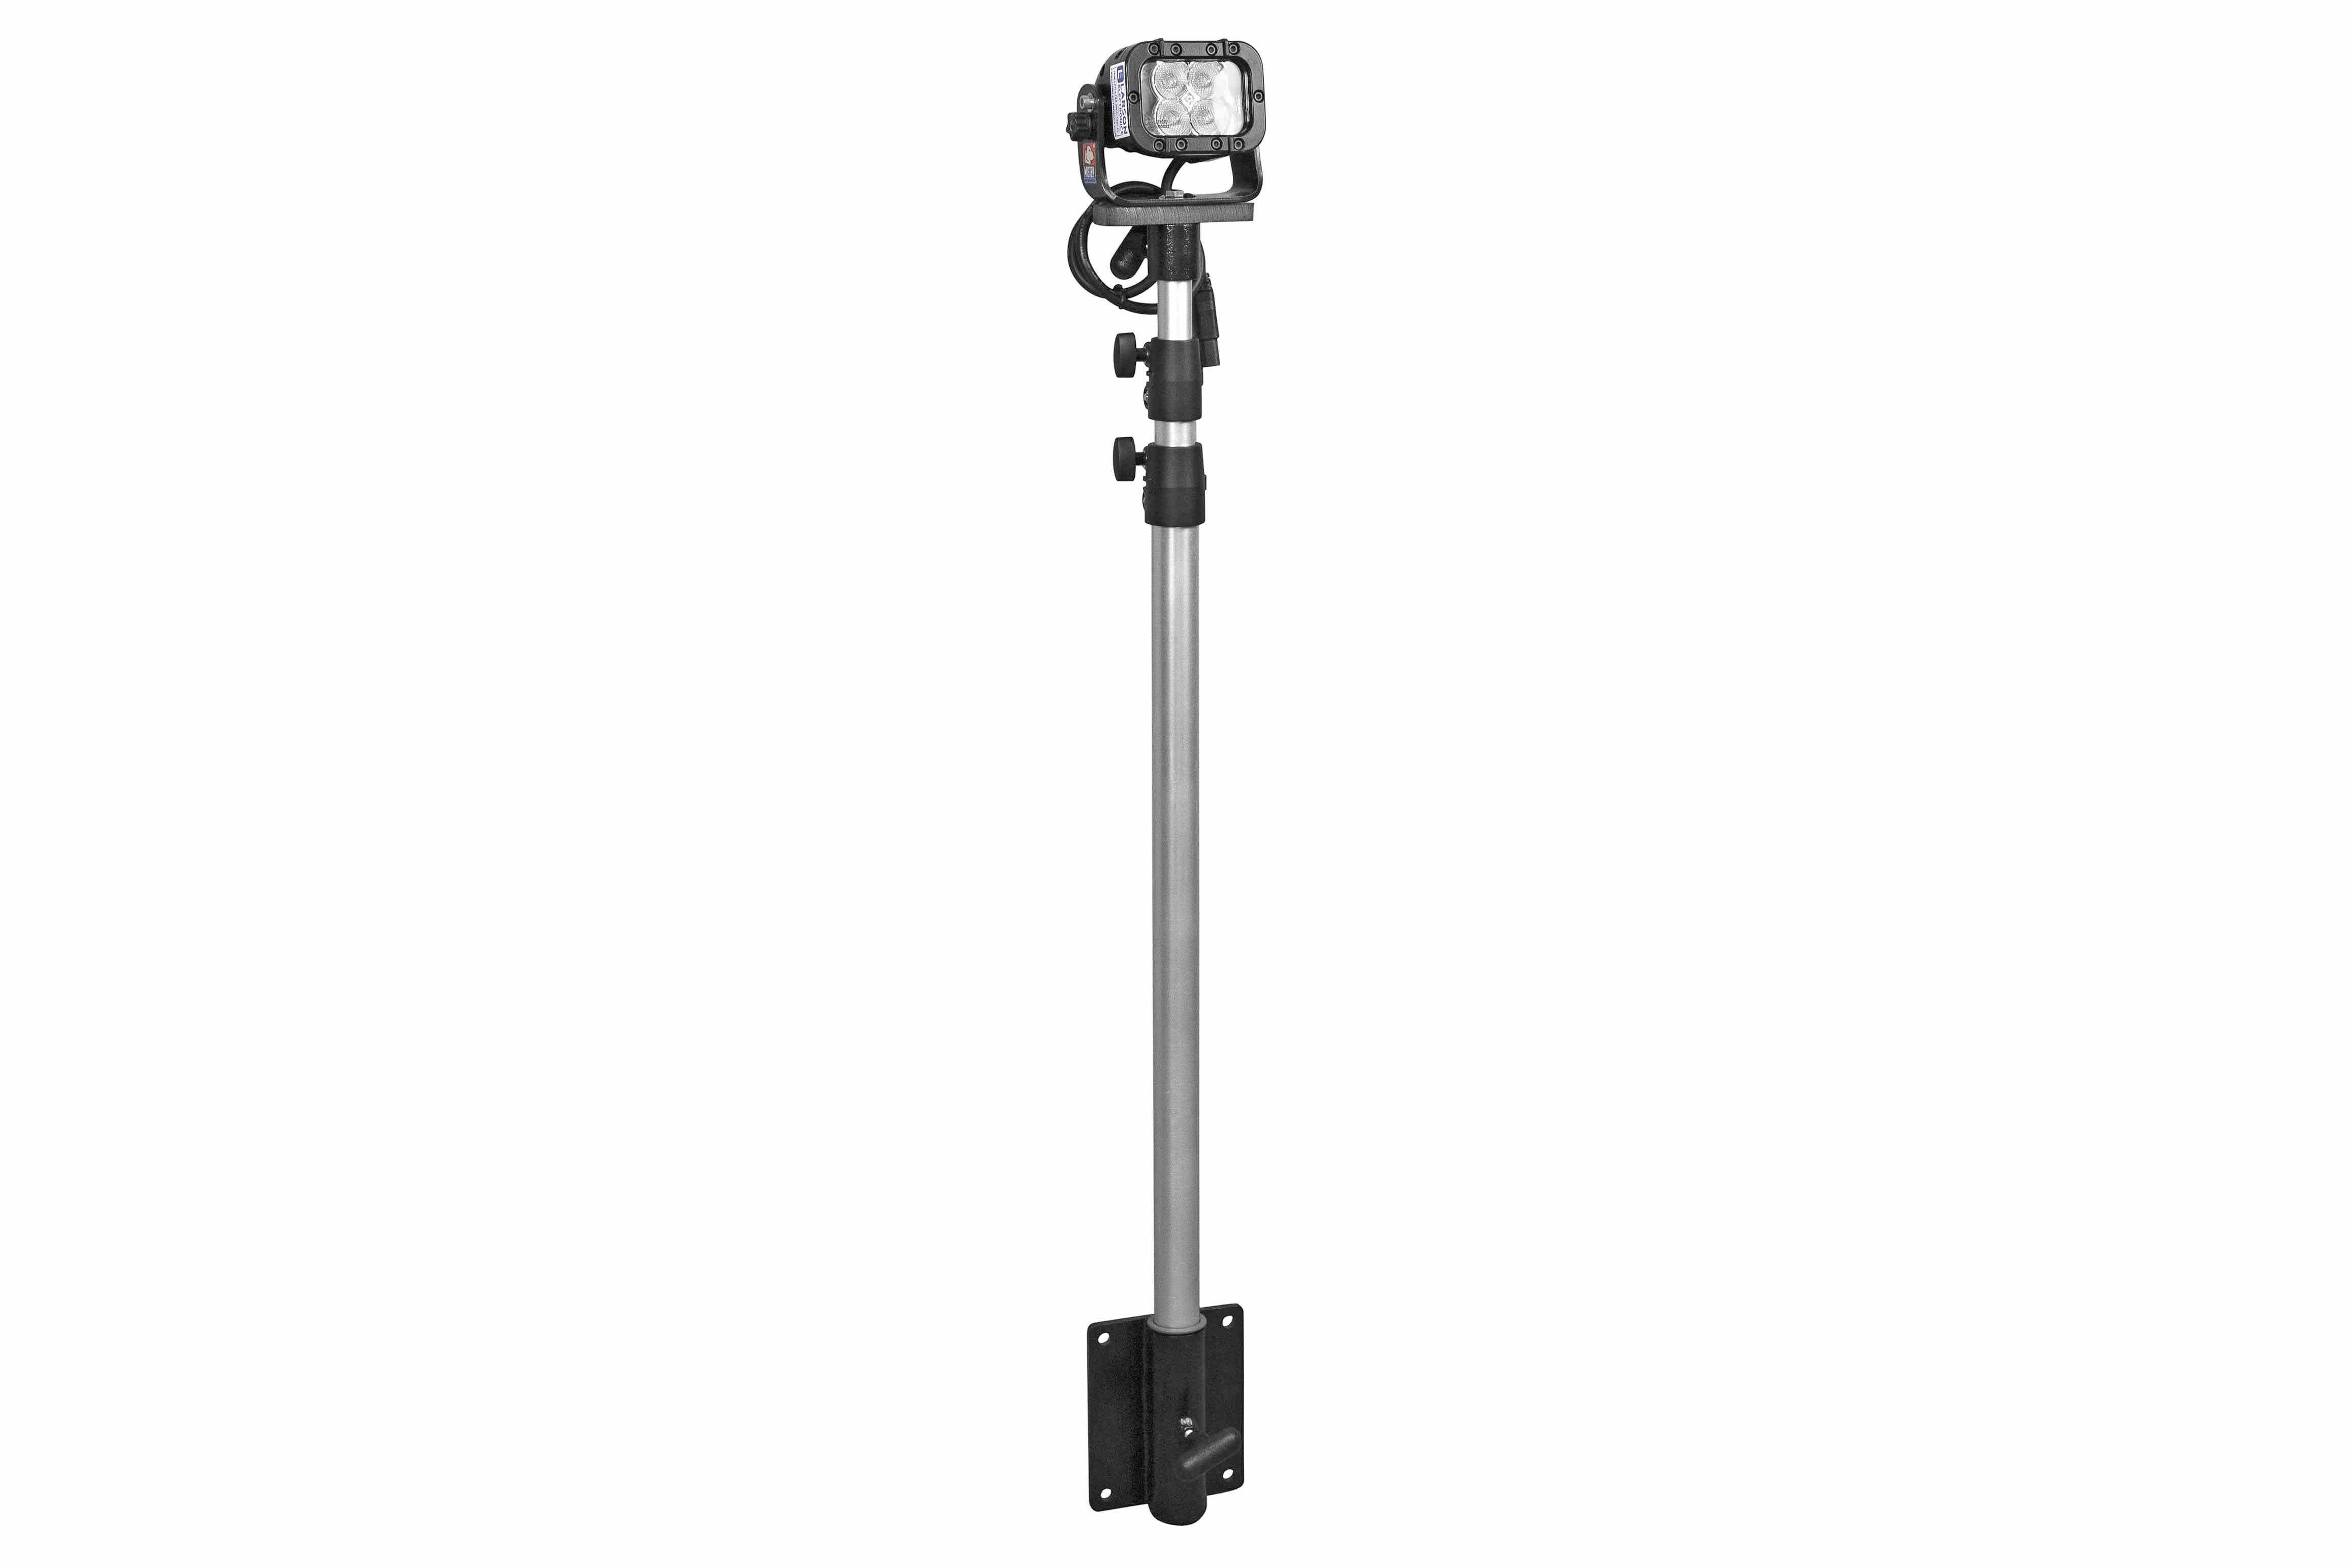 12 Watt Portable Led Telescoping Light Pole